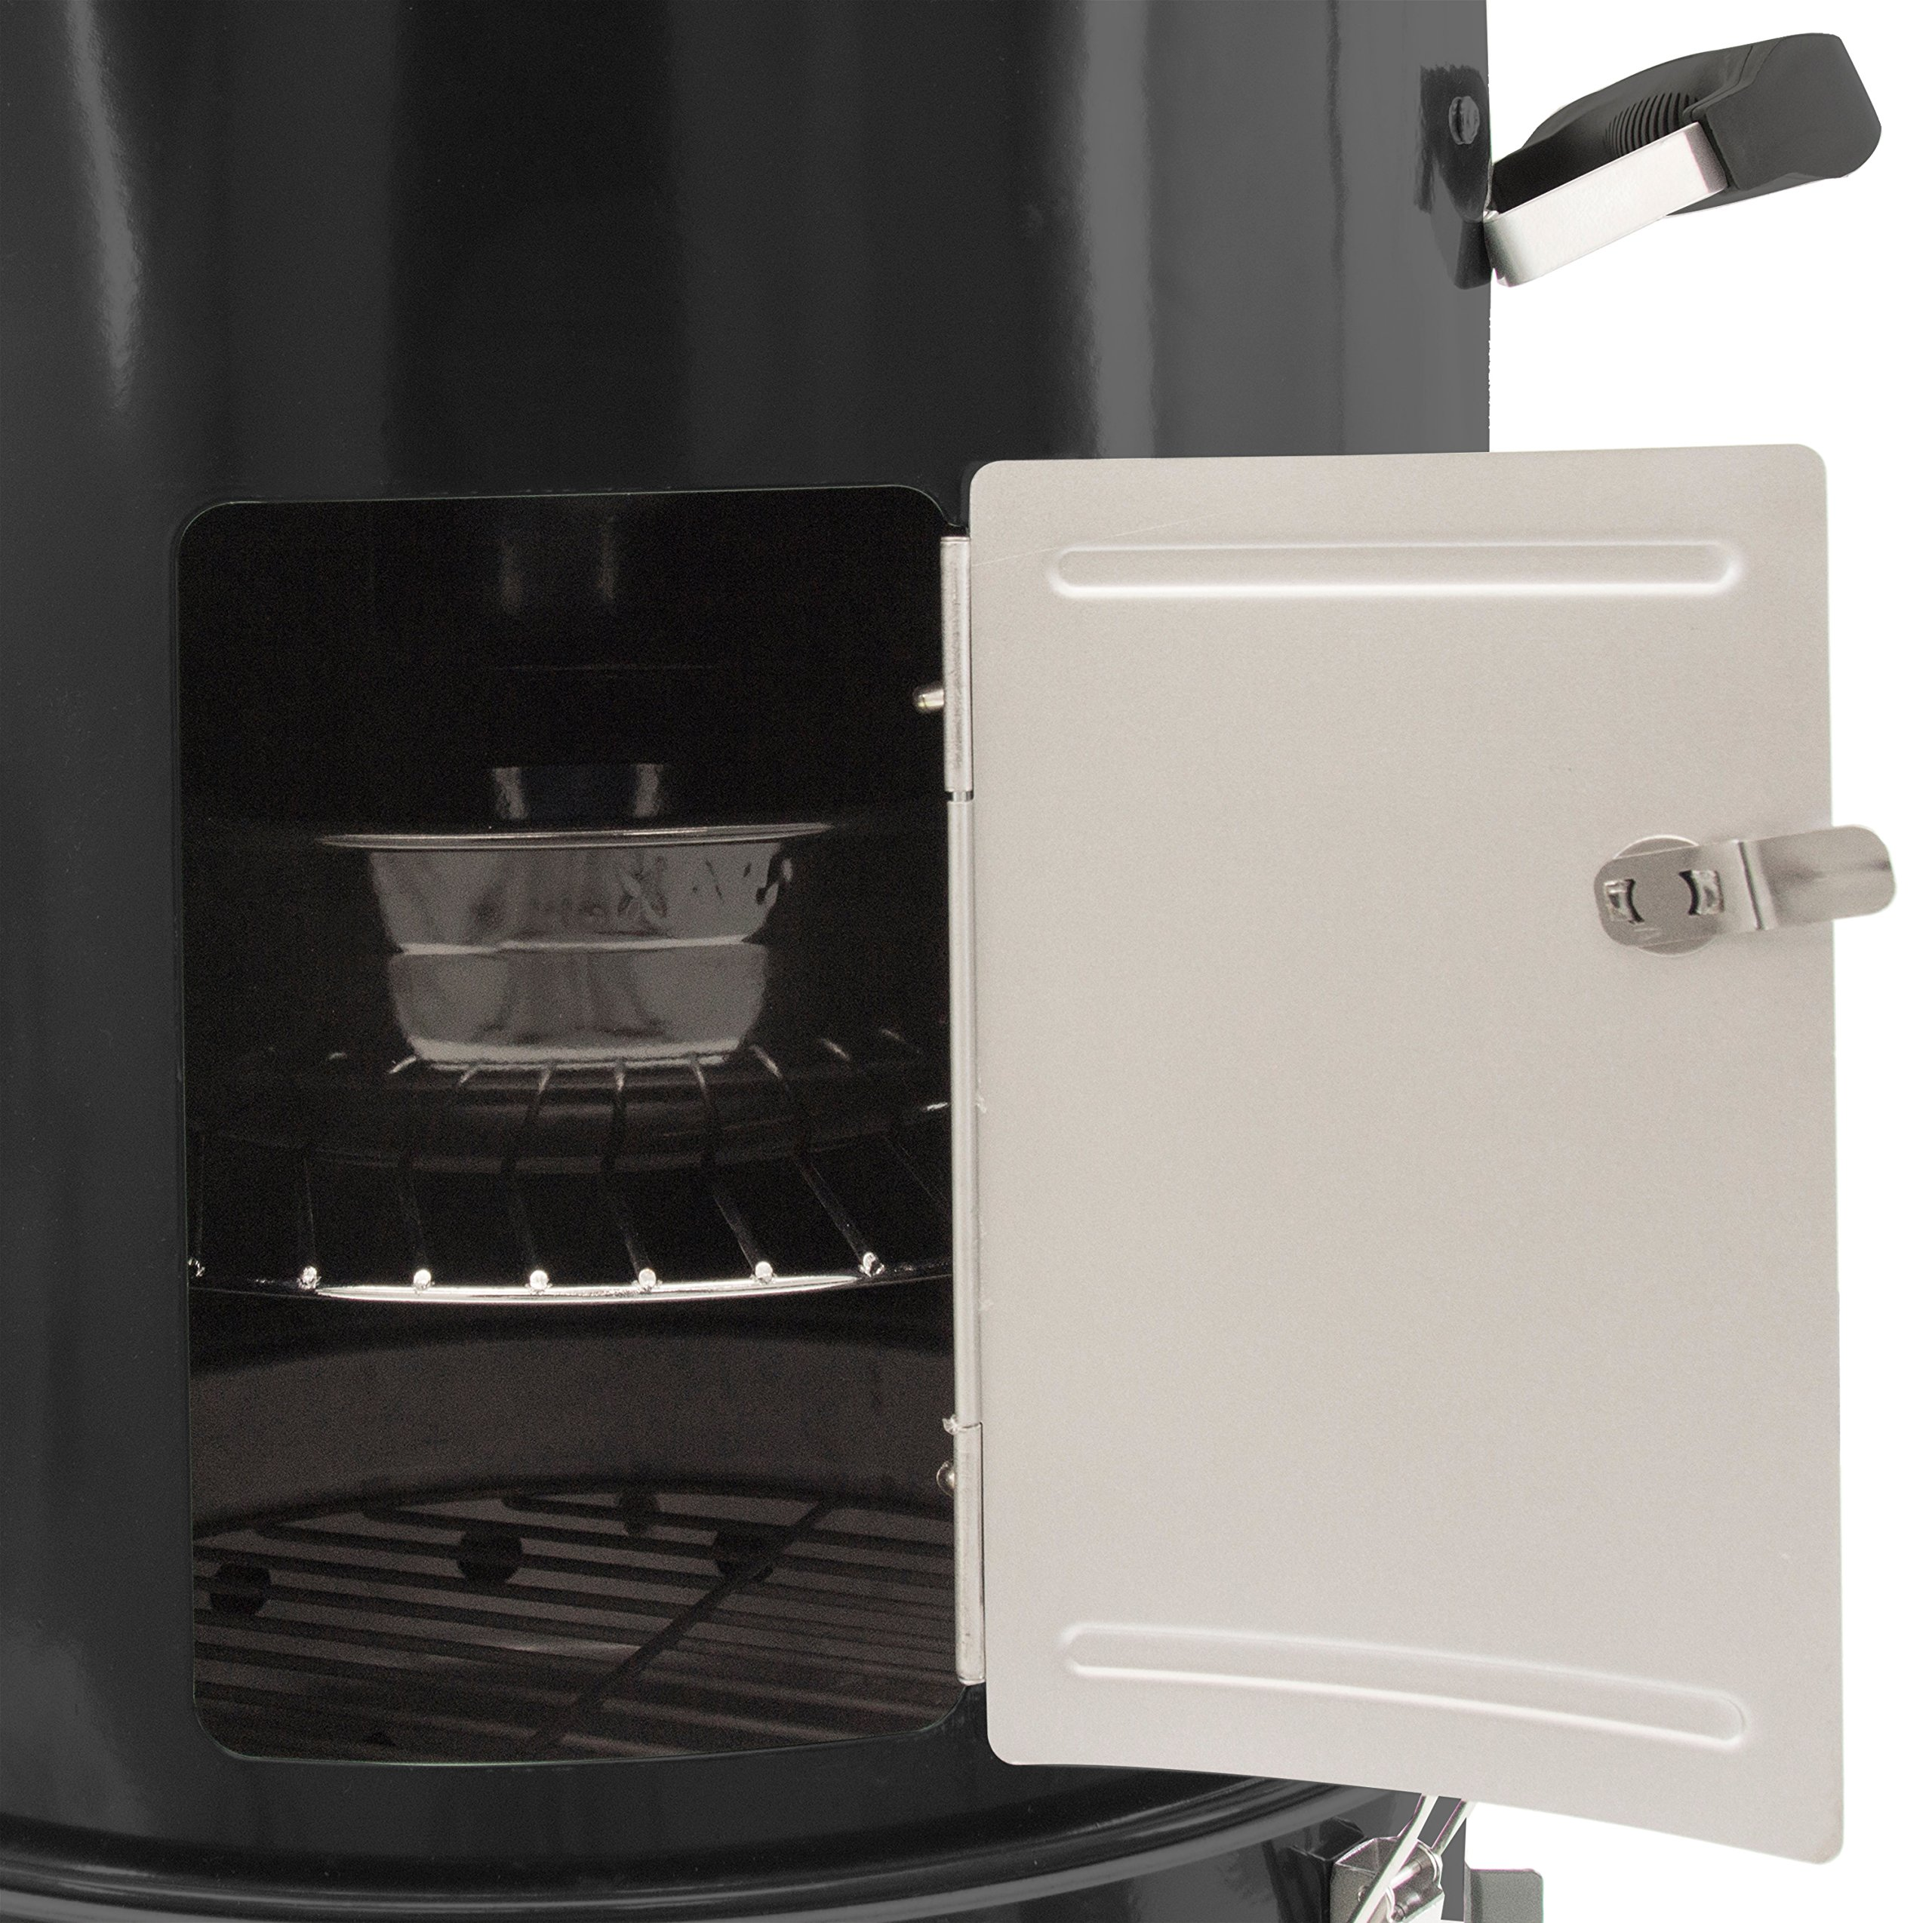 Dyna-Glo DGX376BCS-D  Compact Charcoal Bullet Smoker - High Gloss Black by Dyna-Glo (Image #6)